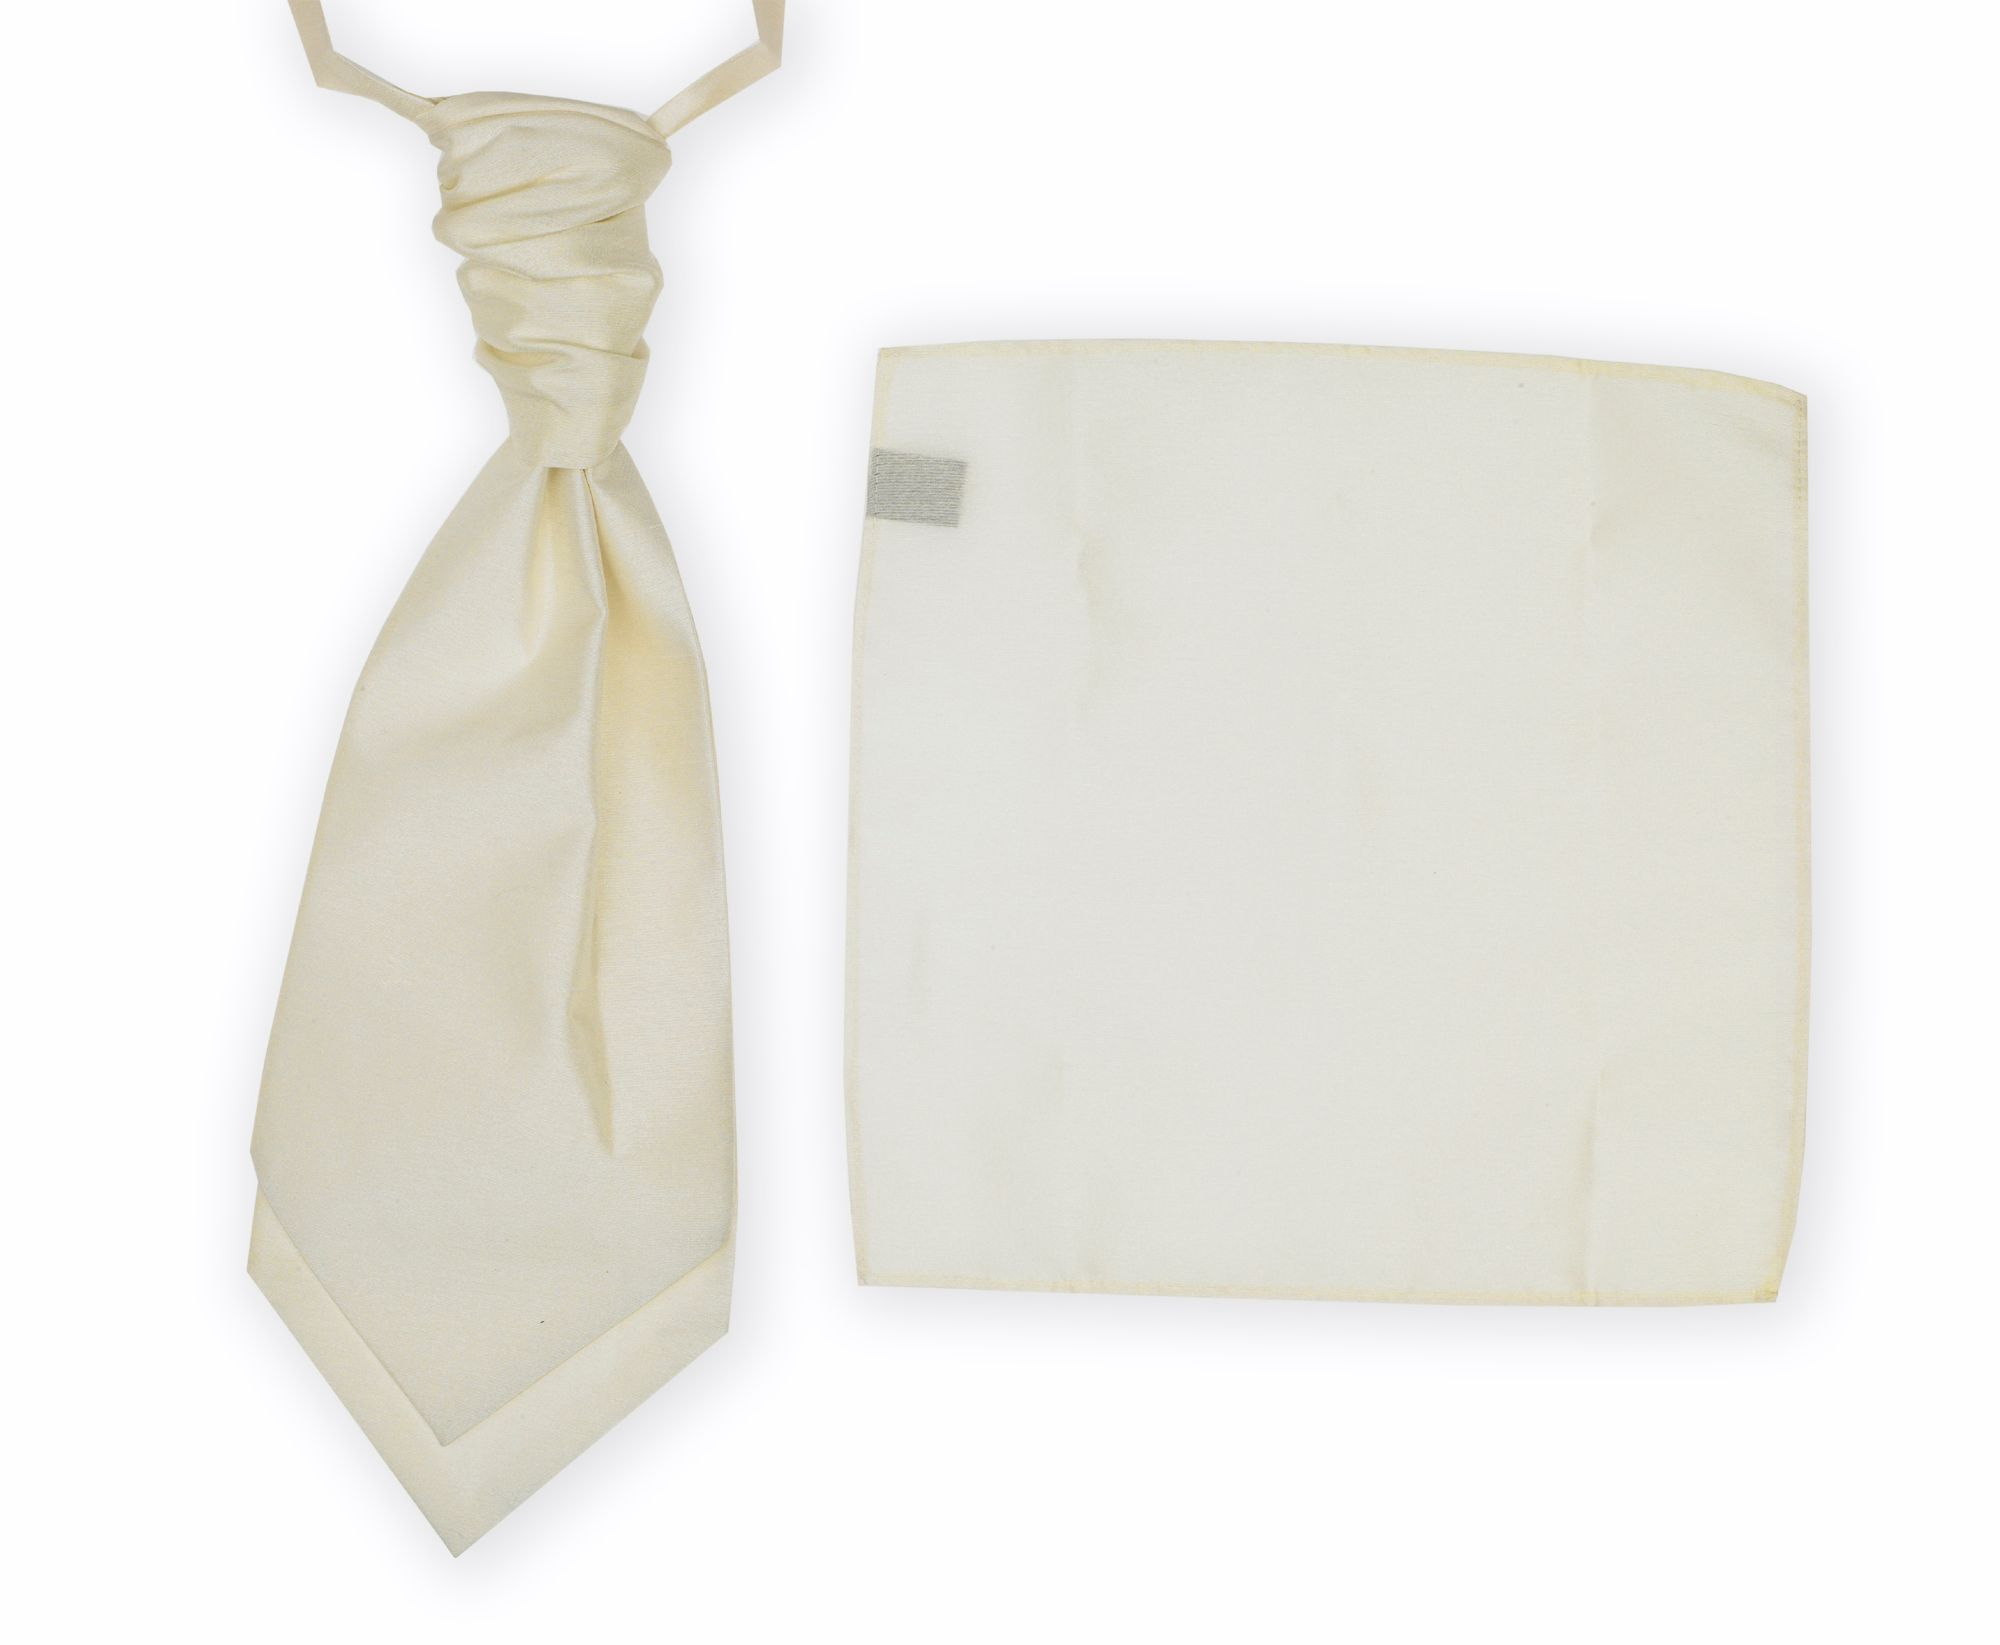 Wedding package cravat & pocket square